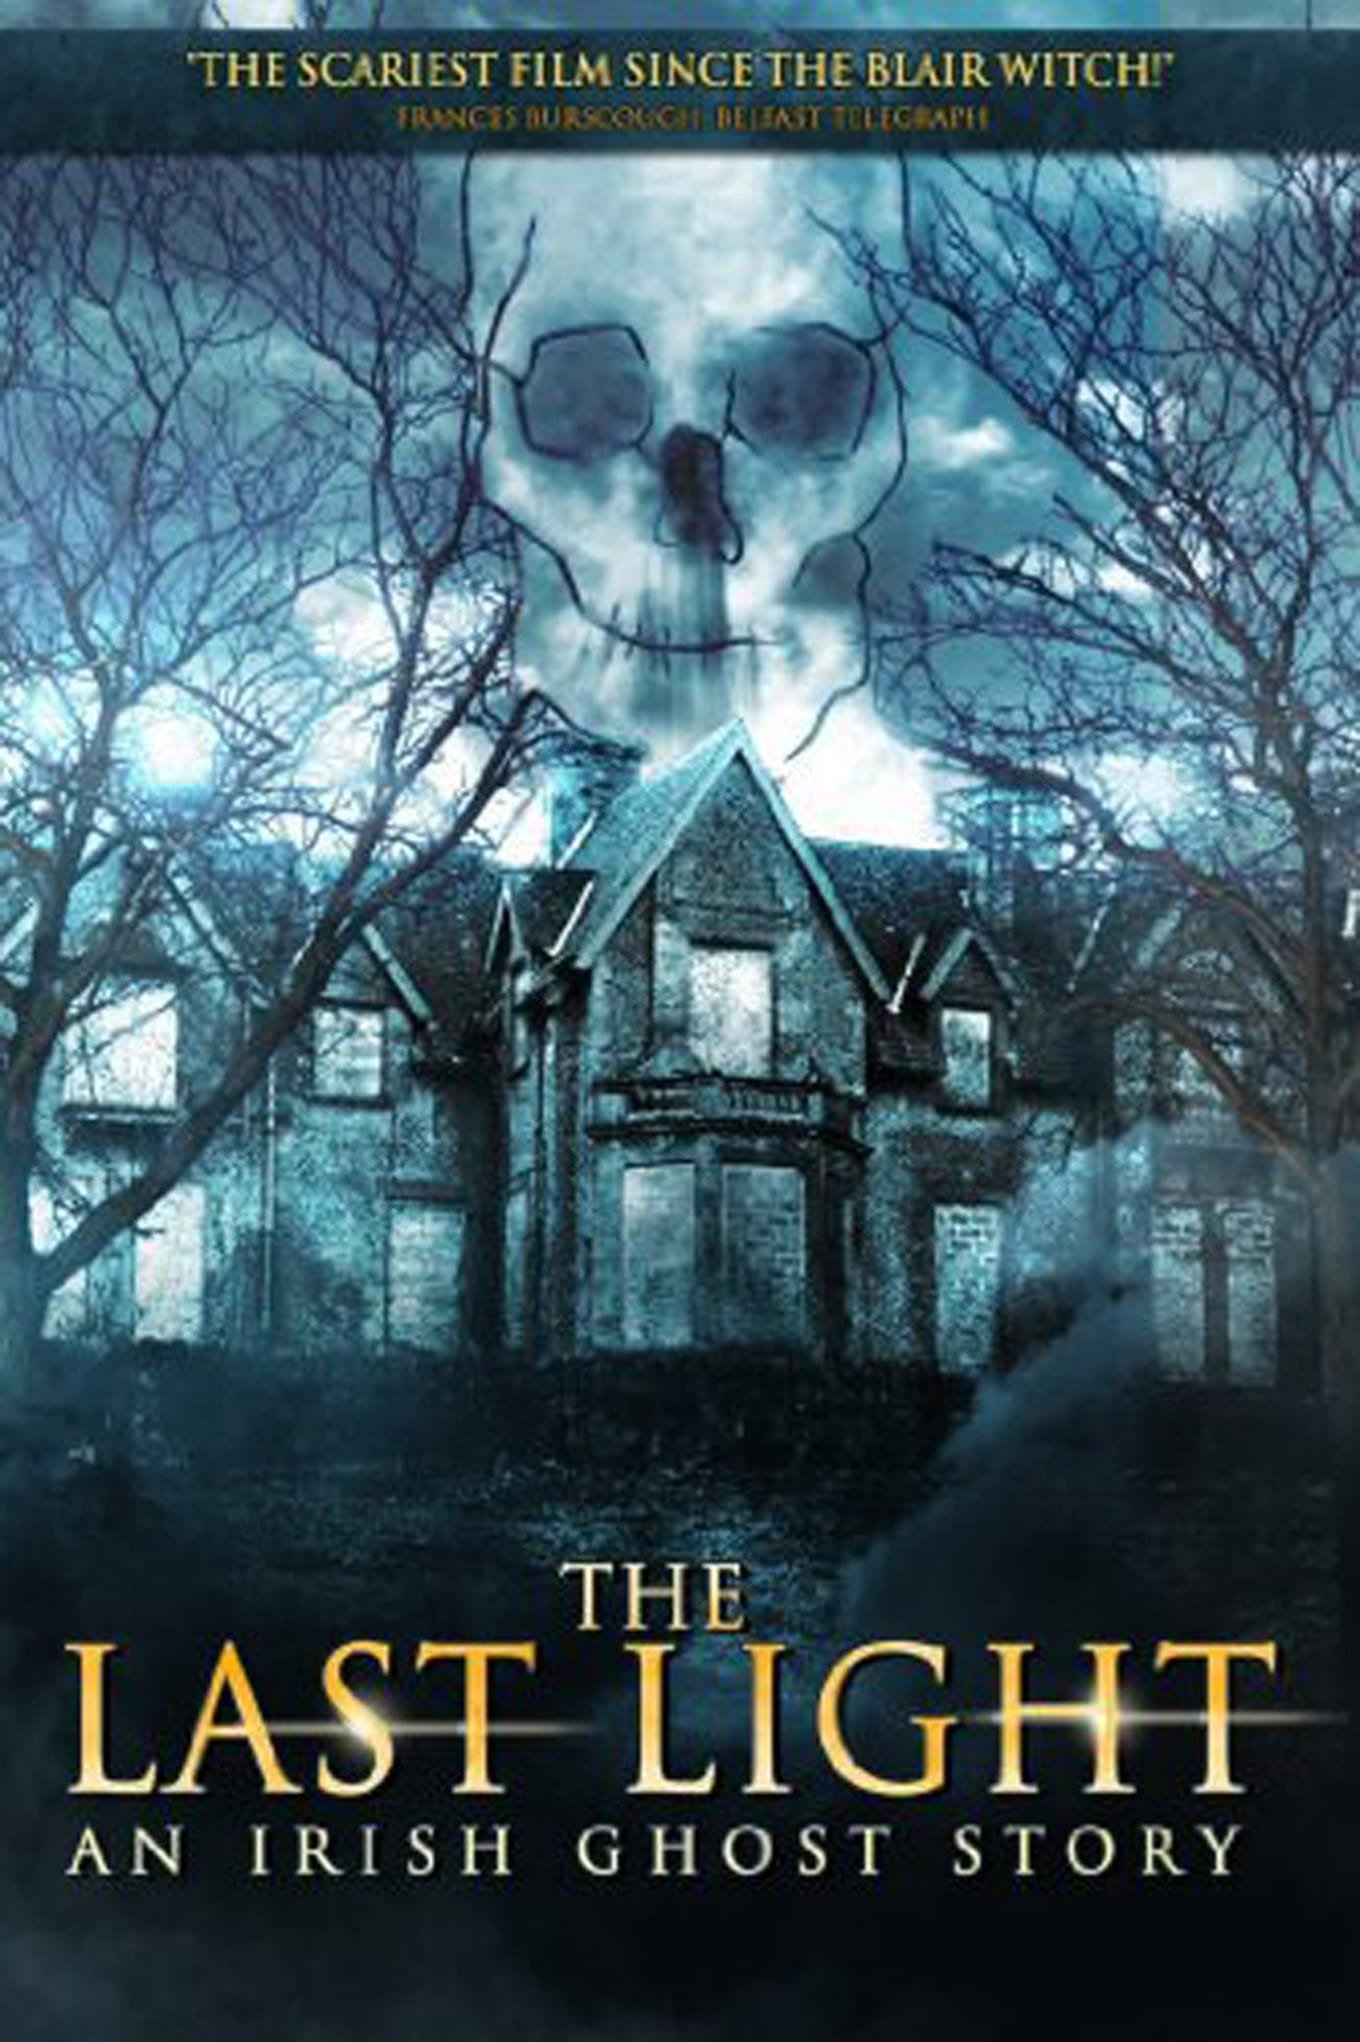 The Last Light: An Irish Ghost Story (2011)